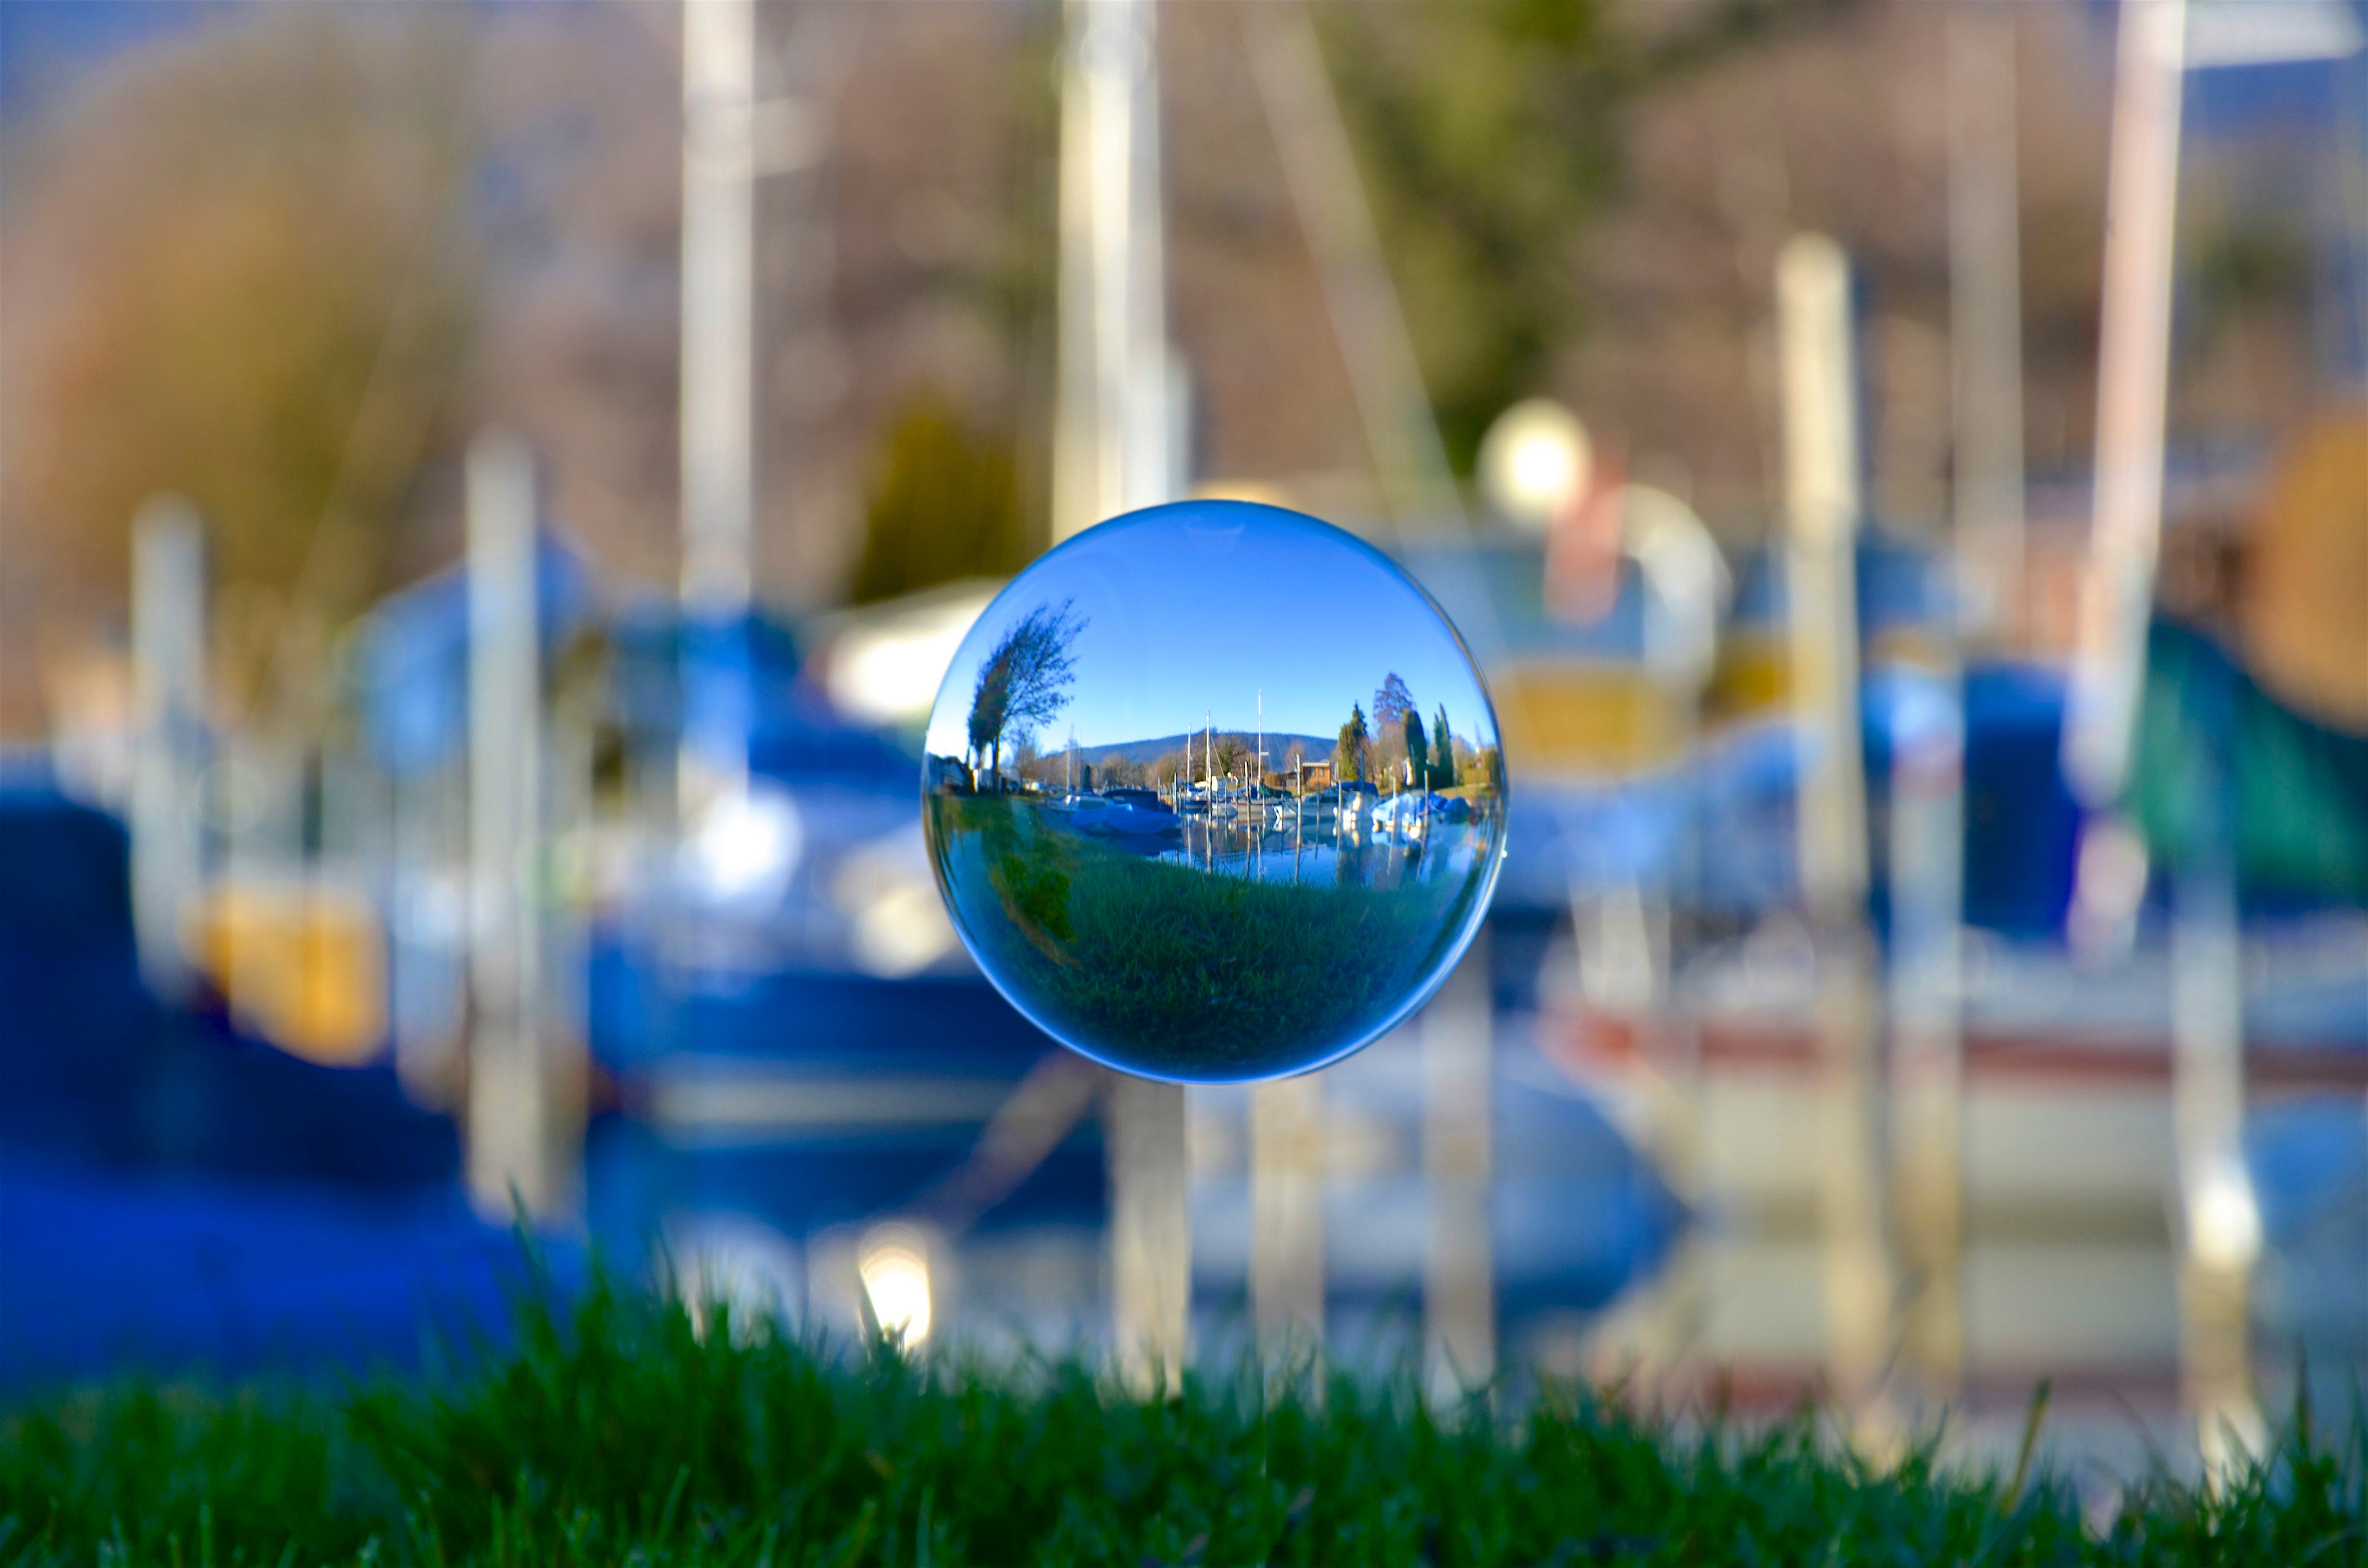 Close-Up Photography of Crystal Ball